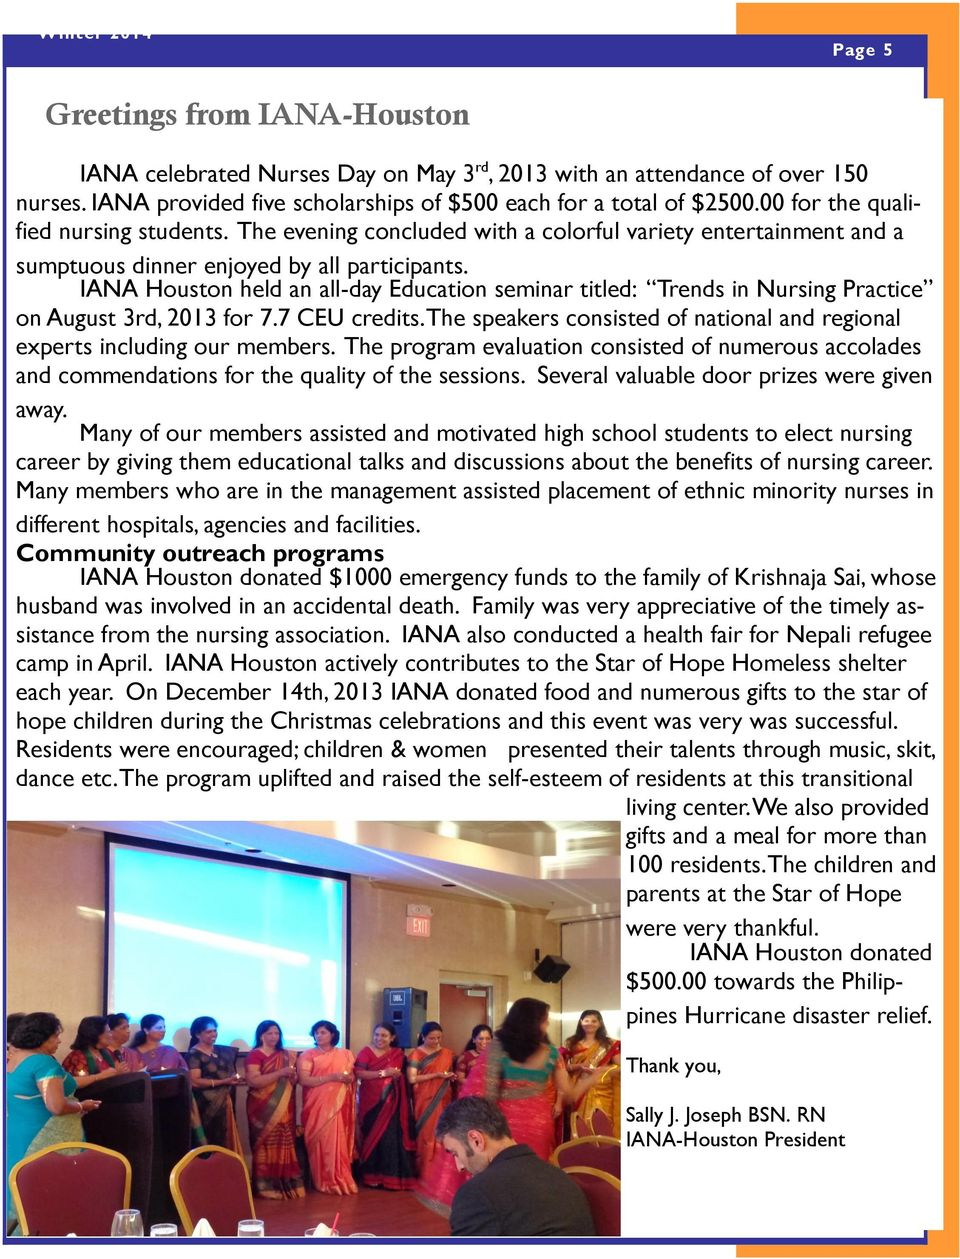 IANA Houston held an all-day Education seminar titled: Trends in Nursing Practice on August 3rd, 2013 for 7.7 CEU credits.